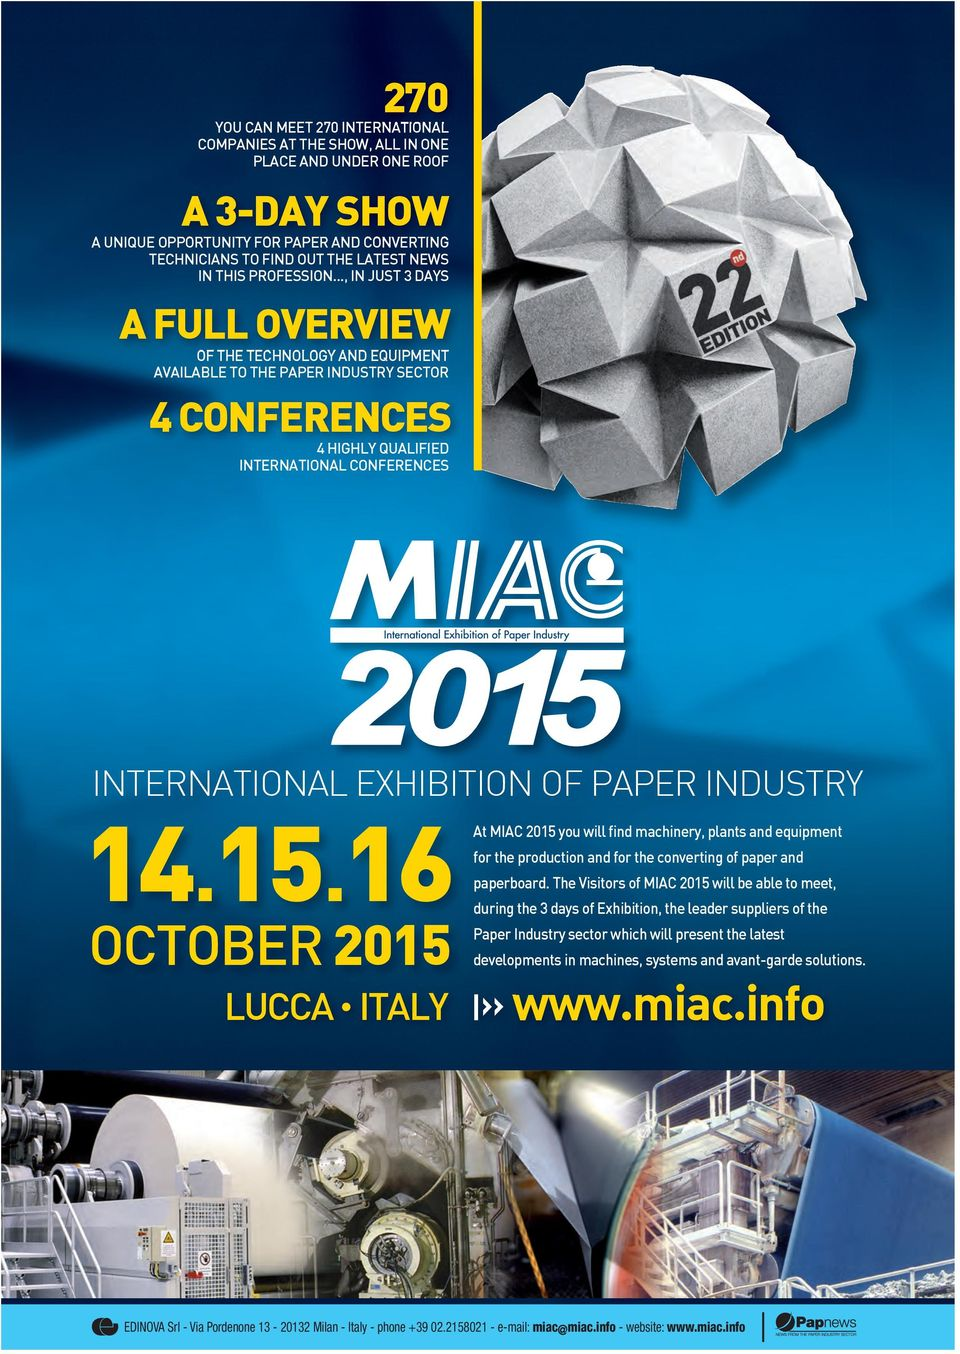 .., IN JUST 3 DAYS A FULL OVERVIEW OF THE TECHNOLOGY AND EQUIPMENT AVAILABLE TO THE PAPER INDUSTRY SECTOR 4 CONFERENCES 4 HIGHLY QUALIFIED INTERNATIONAL CONFERENCES INTERNATIONAL EXHIBITION OF PAPER